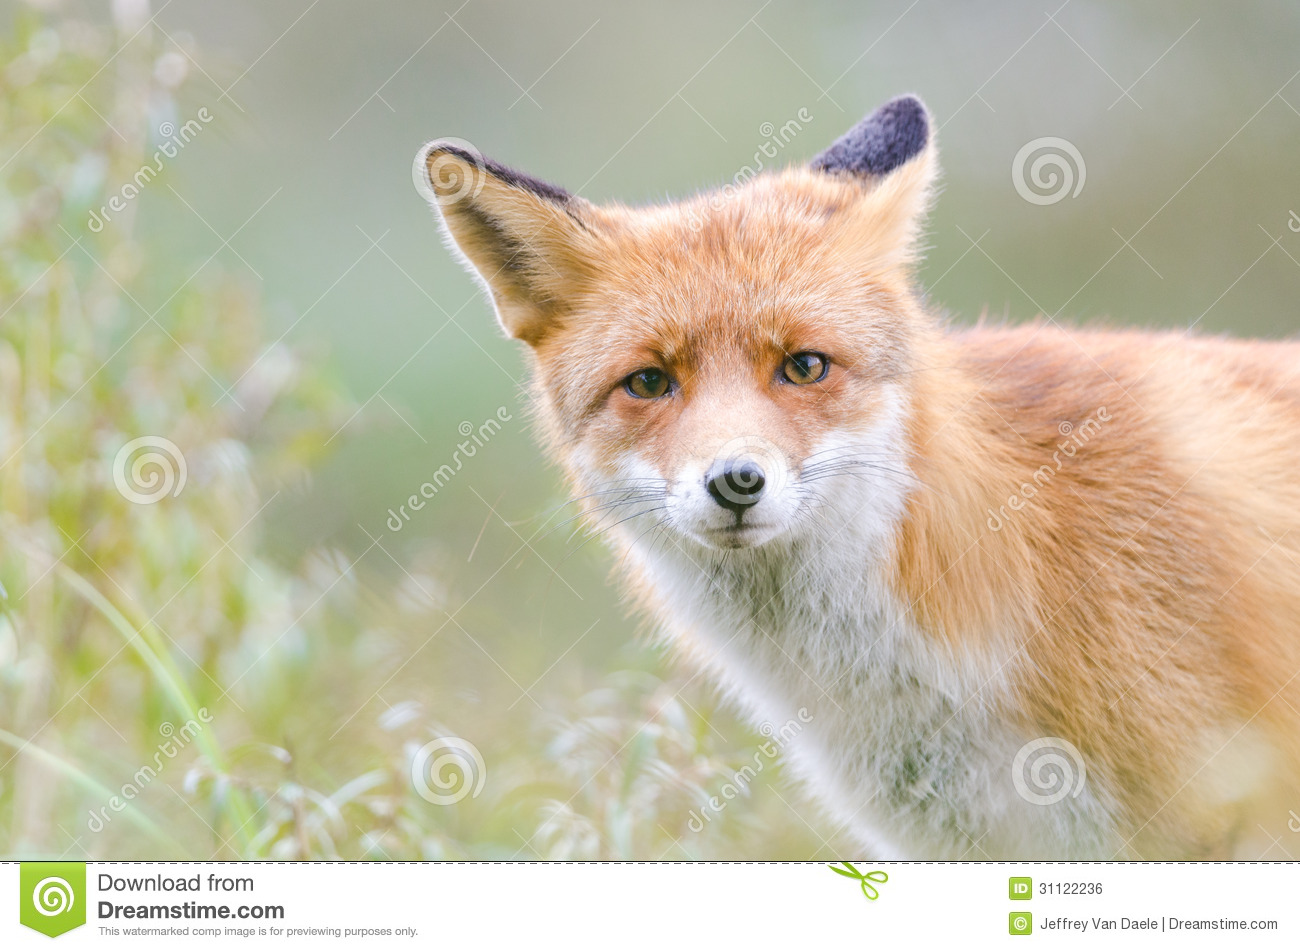 Free Pictures Royalty Free Red Fox Royalty Free Stock